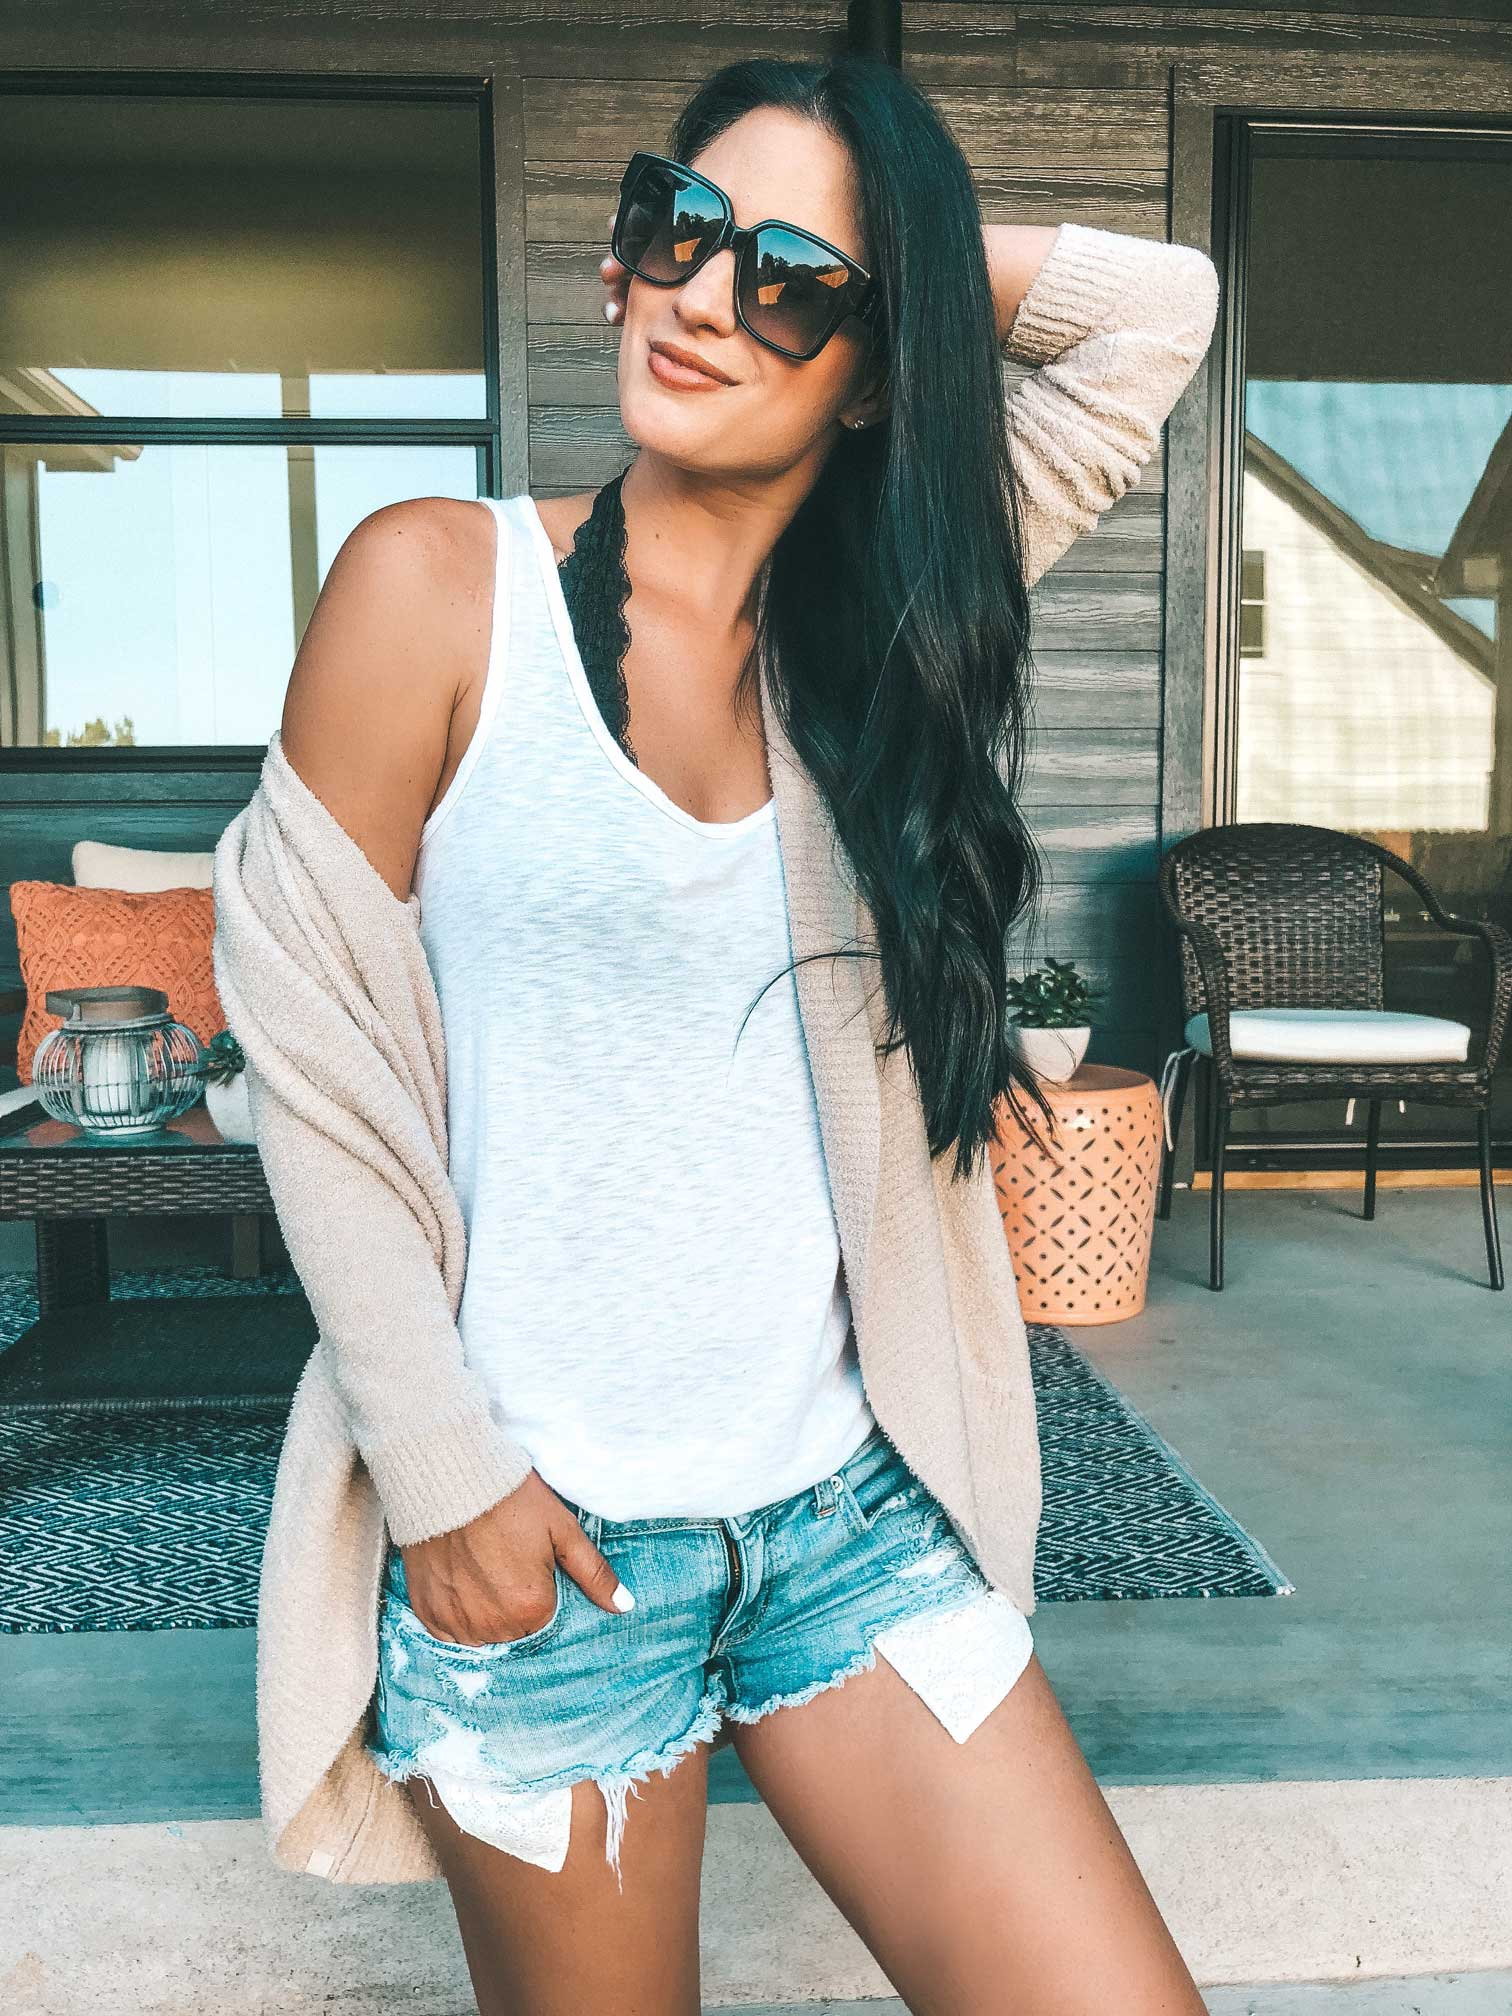 DTKAustin shares her 7 must have items from the 2018 Nordstrom Anniversary Sale NSALE. - Nordstrom Anniversary Sale Must Haves featured by popular Austin fashion blogger, Dressed to Kill    DTK Austin #nsale #nordstrom #anniversarysale #nordstromsale #fashion #style #womensoutfits #dtkaustin